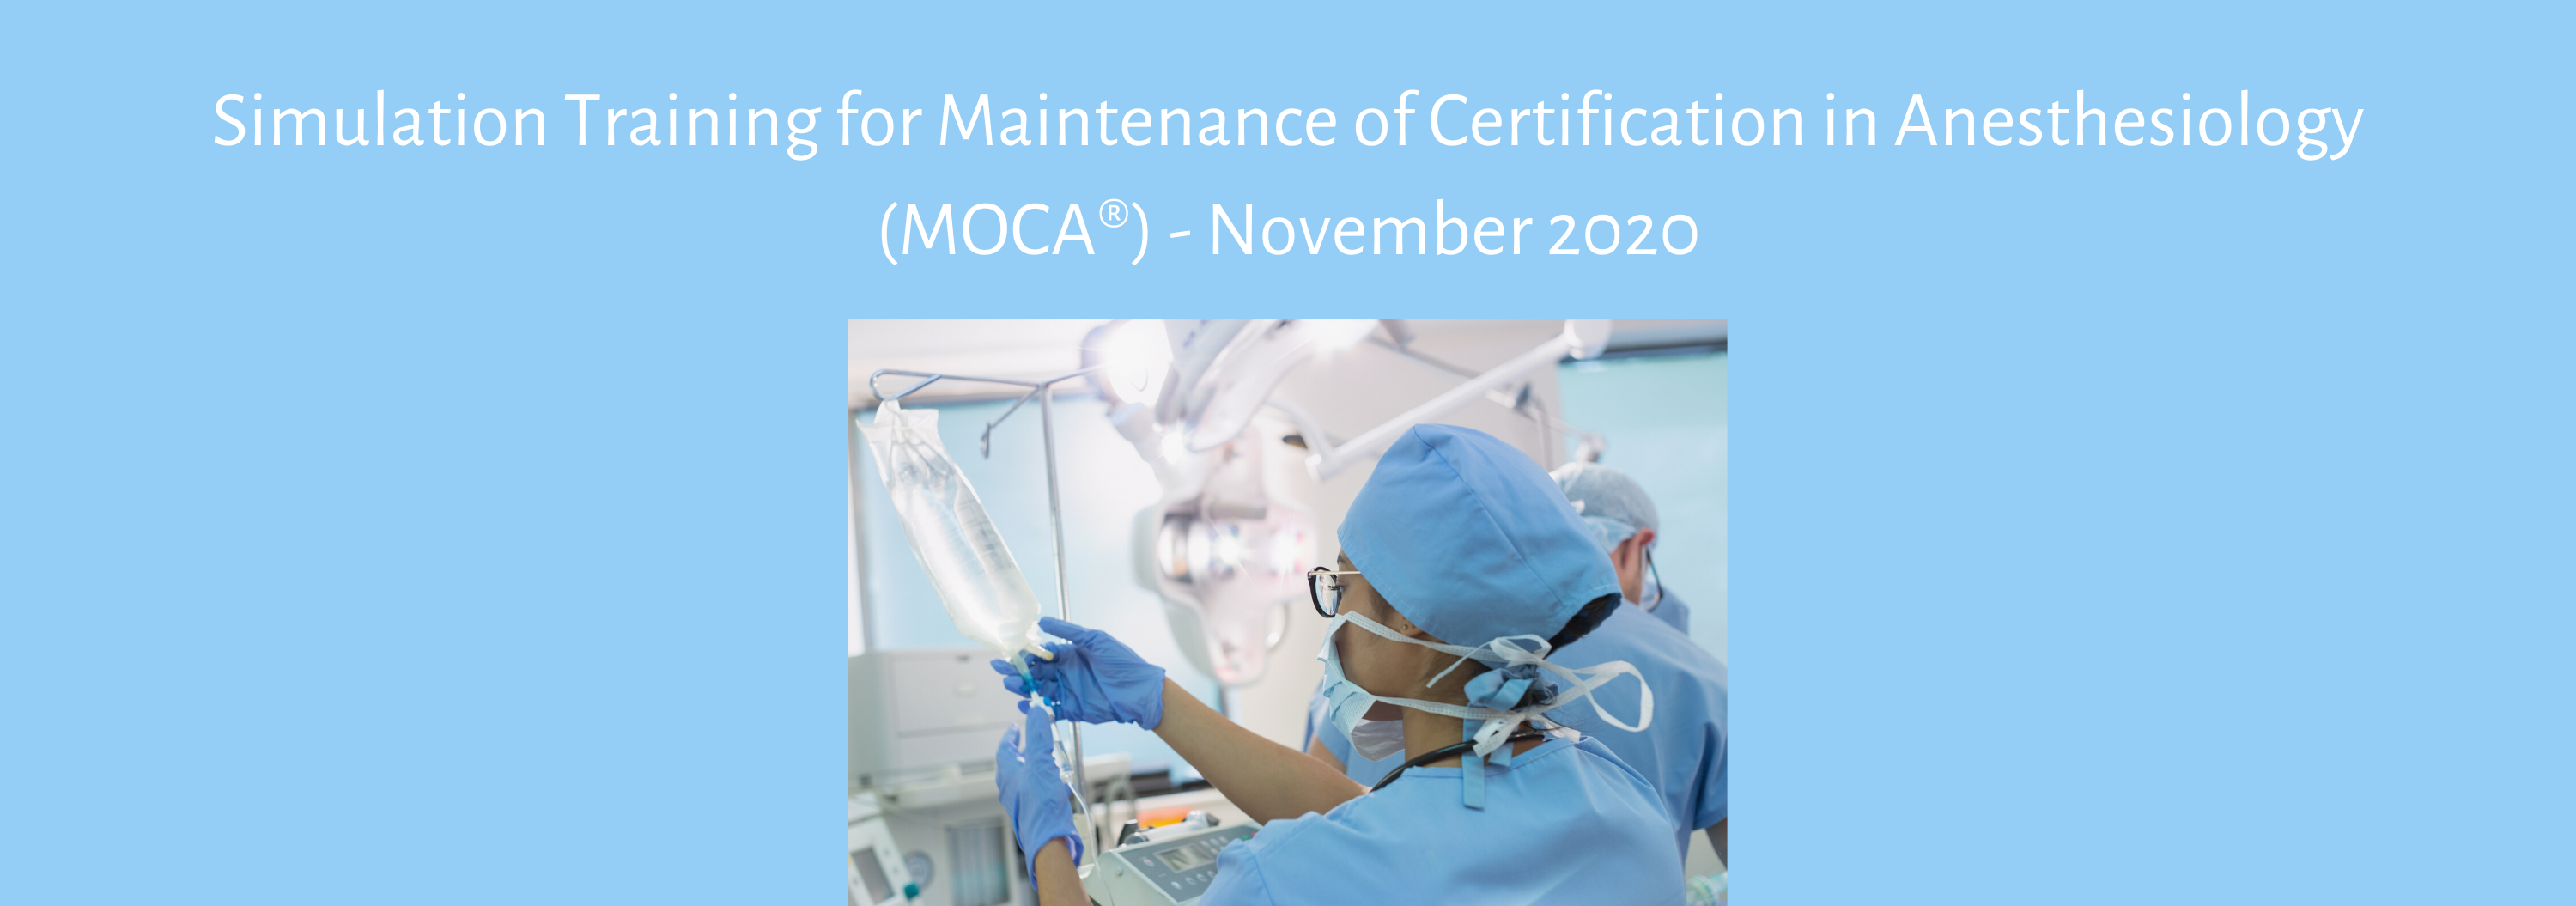 Simulation Training for Maintenance of Certification in Anesthesiology (MOCA) - Nov. 23, 2020 Banner